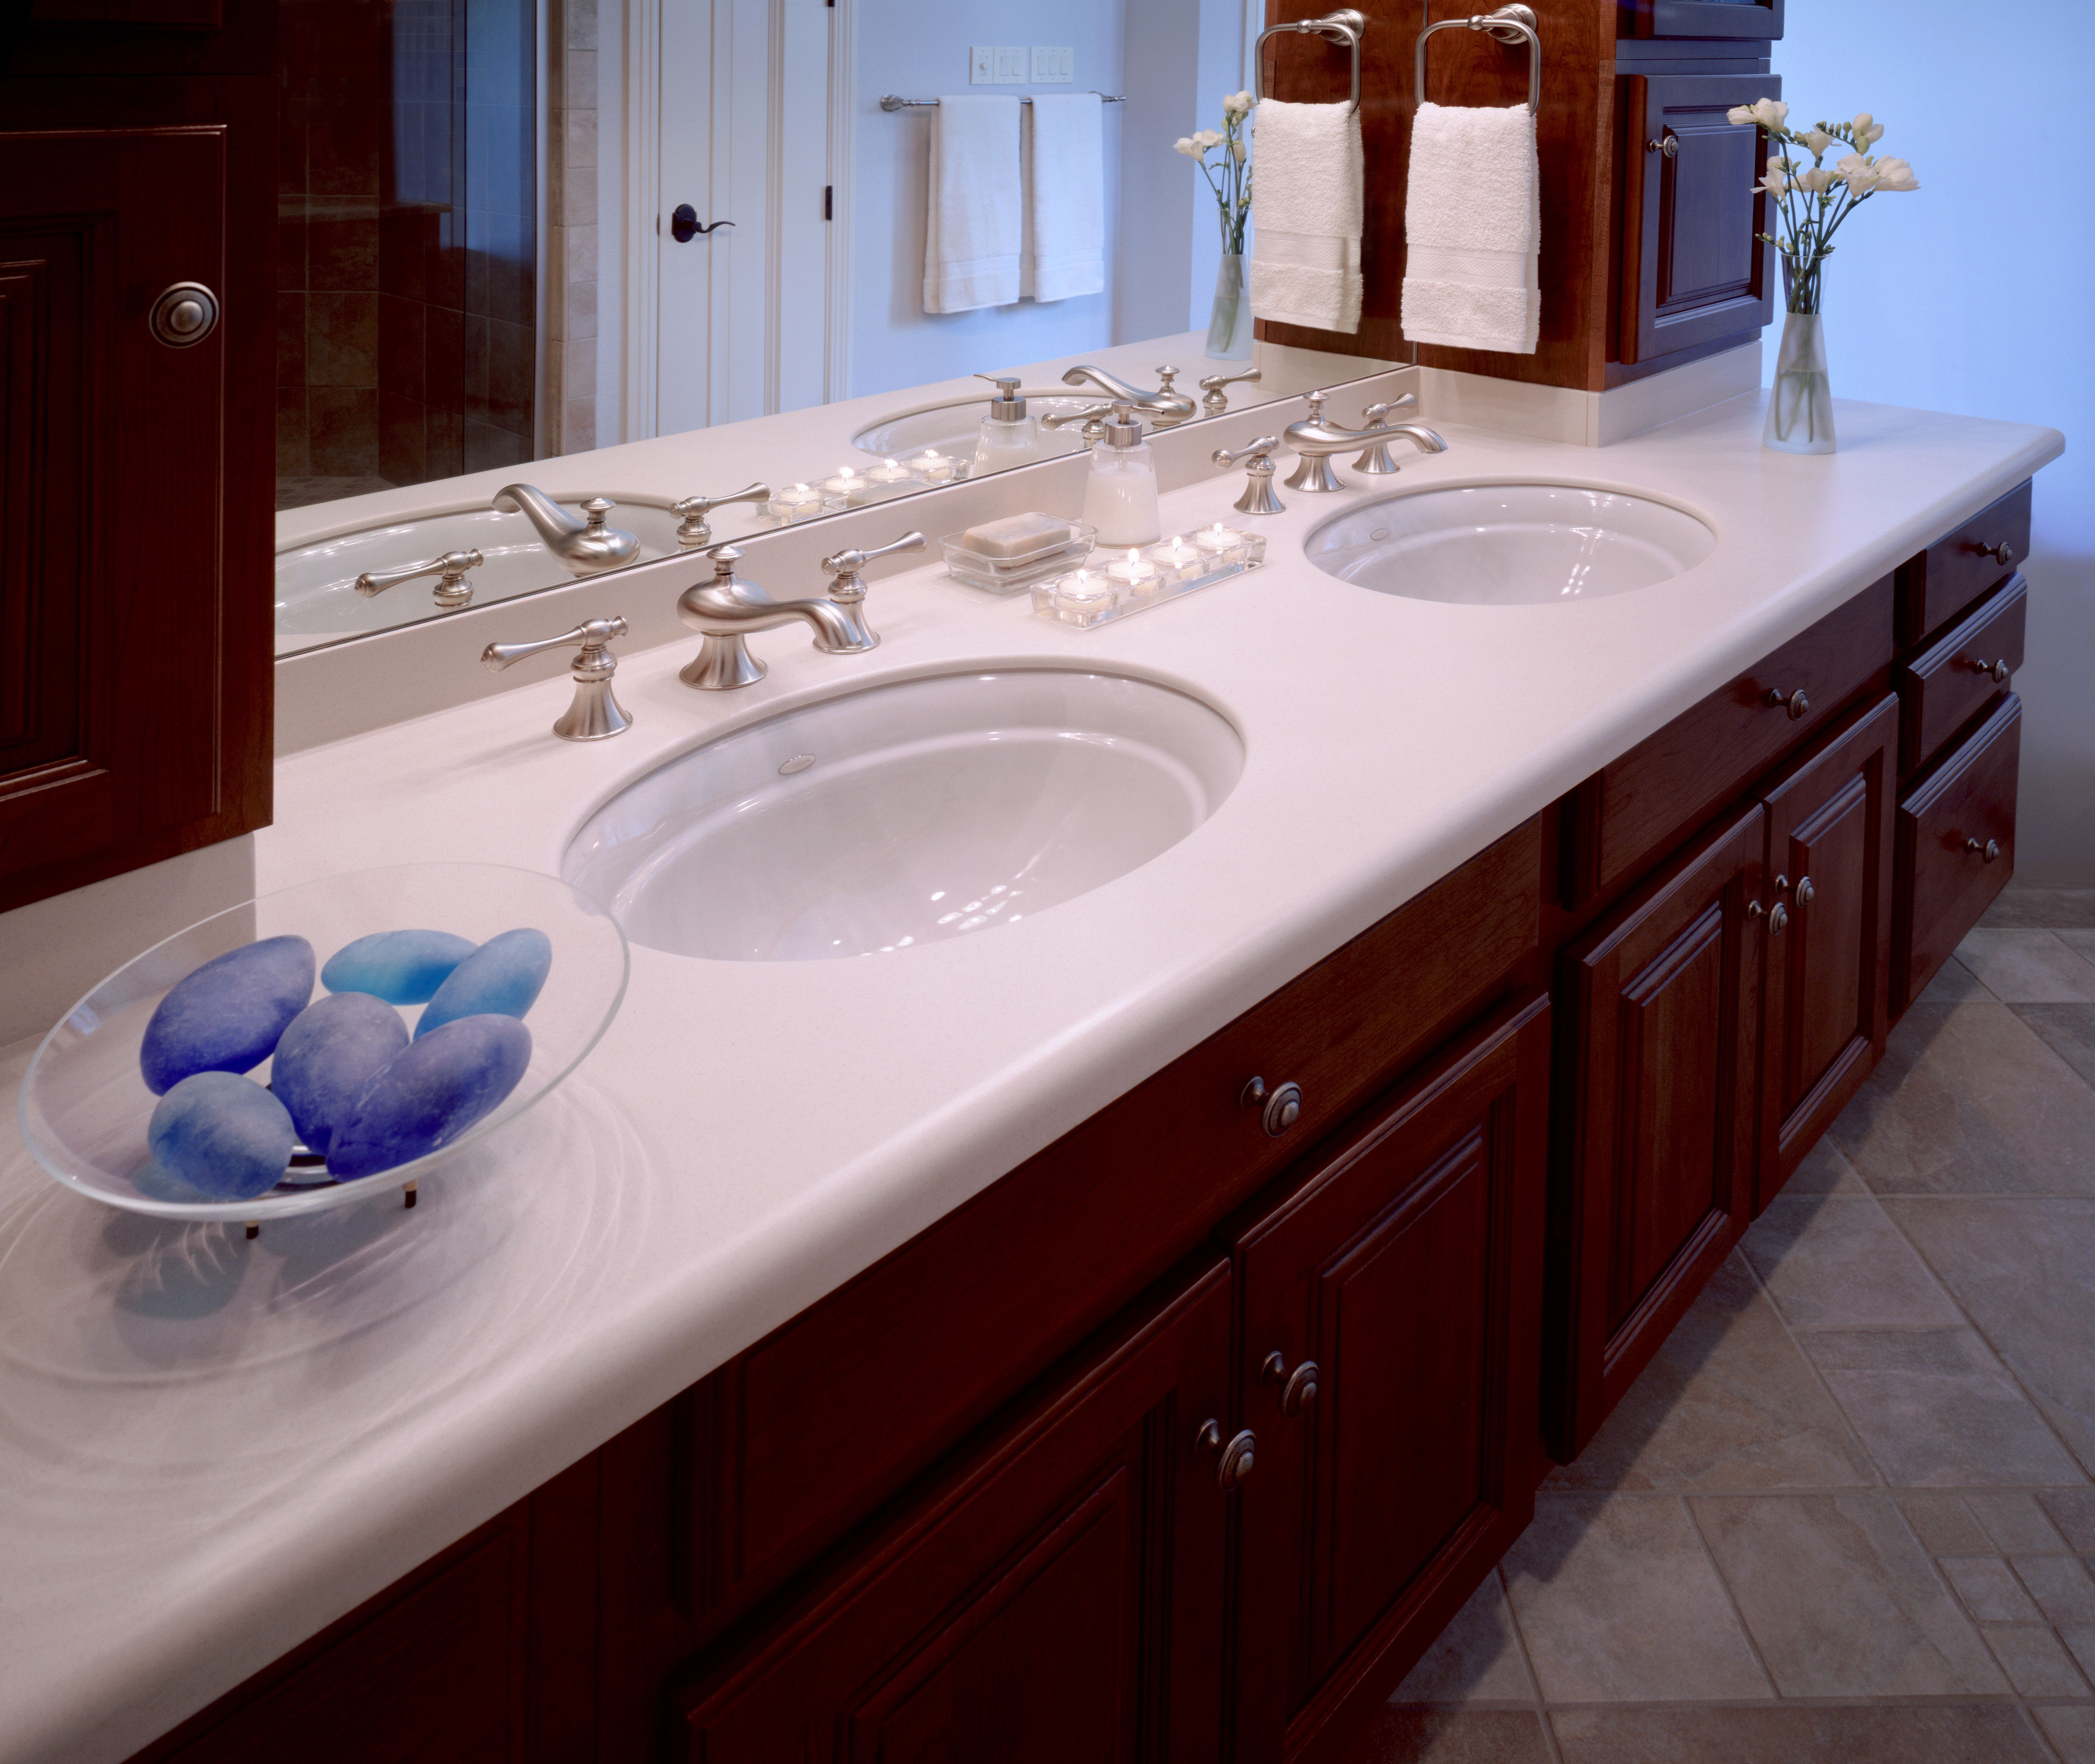 the integrated Corian sink we are getting with our Corian ...